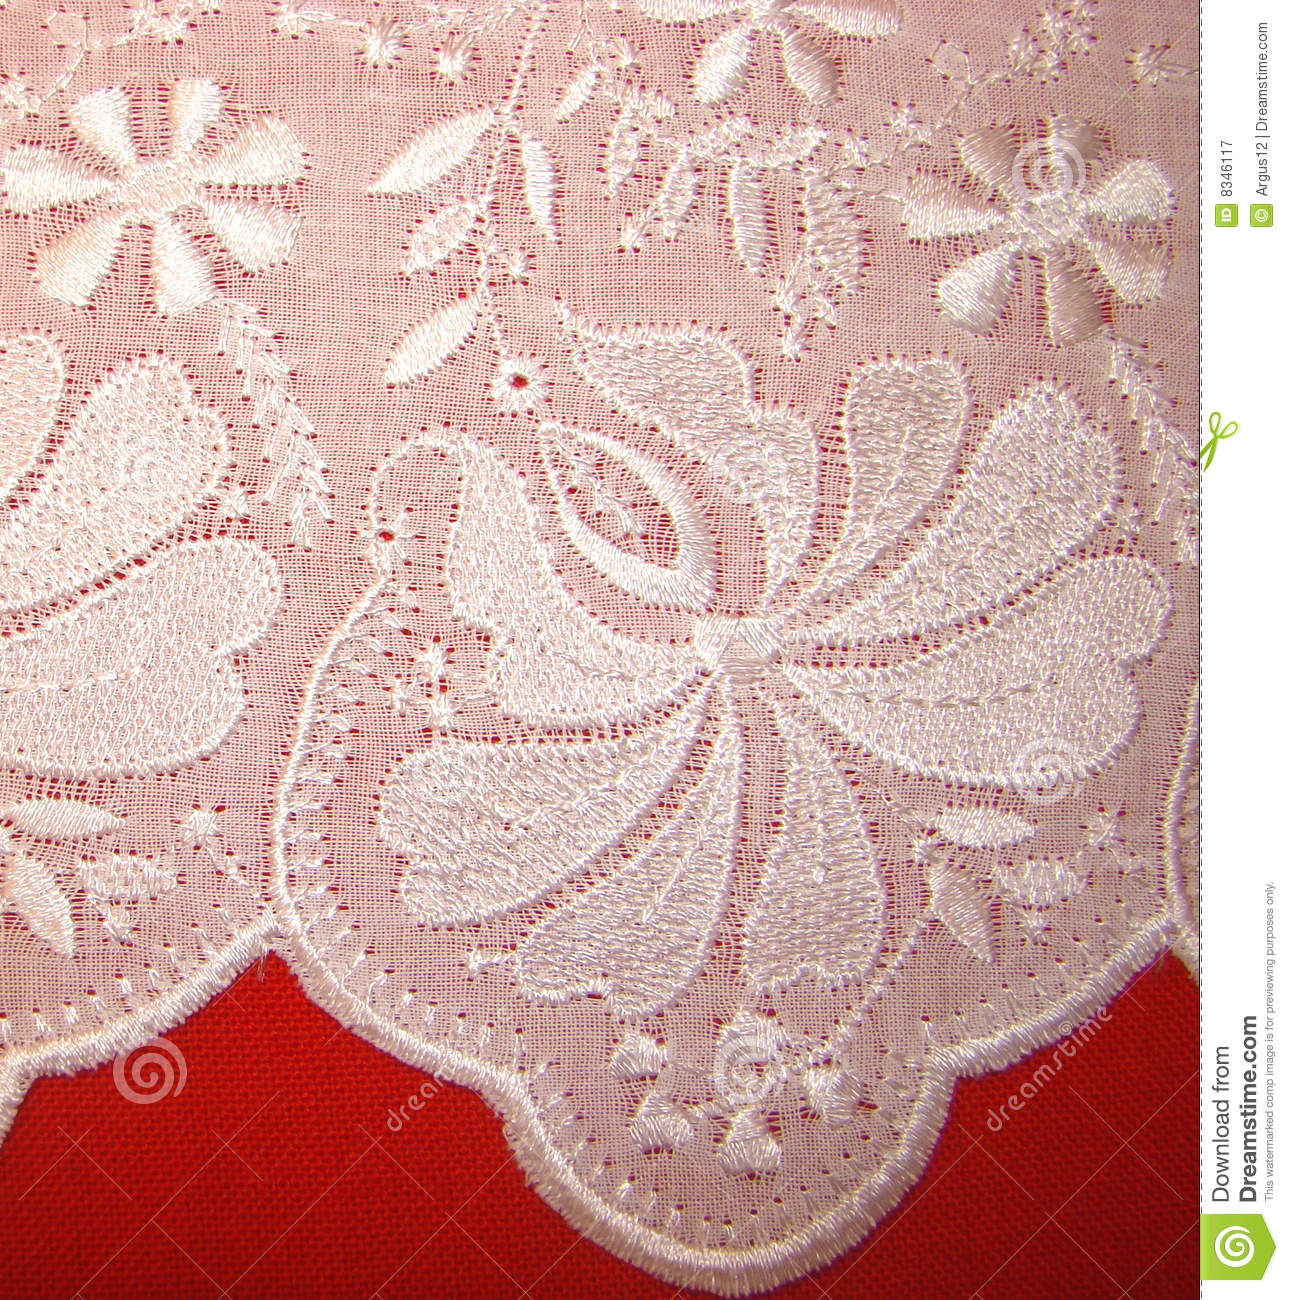 Background batik pattern stock photography image 803022 - Background Pattern Embroidery Rishelye On A White Batic Royalty Free Stock Photography